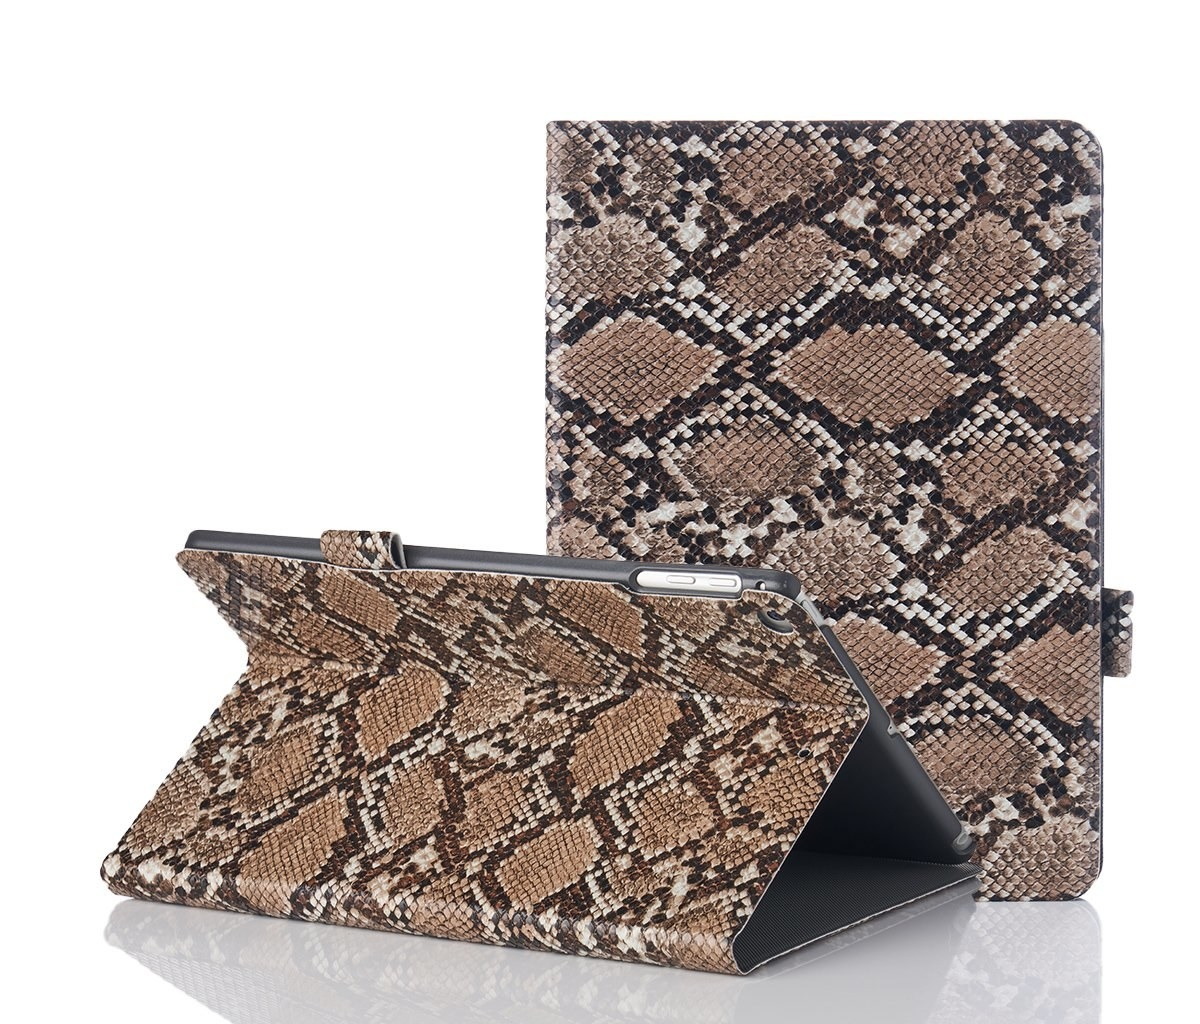 the brown snakeskin case shown closed around an ipad and folded to serve as a stand for a horizontal iPad